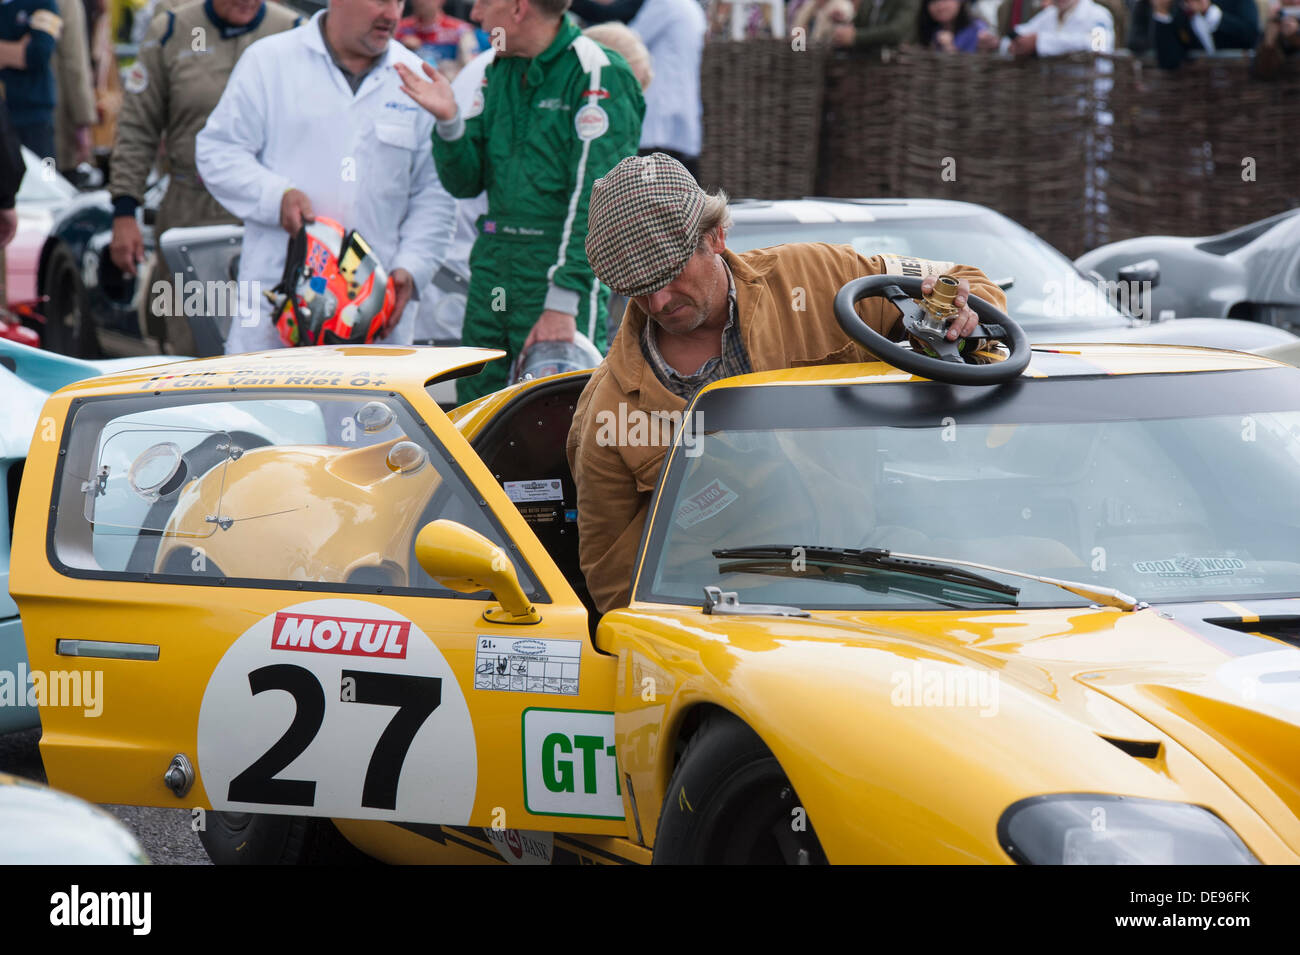 Middle Aged Man Wearing Flat Cap Is Seen Getting Into A Ford Gt  He Has Removed The Steering Wheel For Easier Access And Is Still Holding It In His Hand